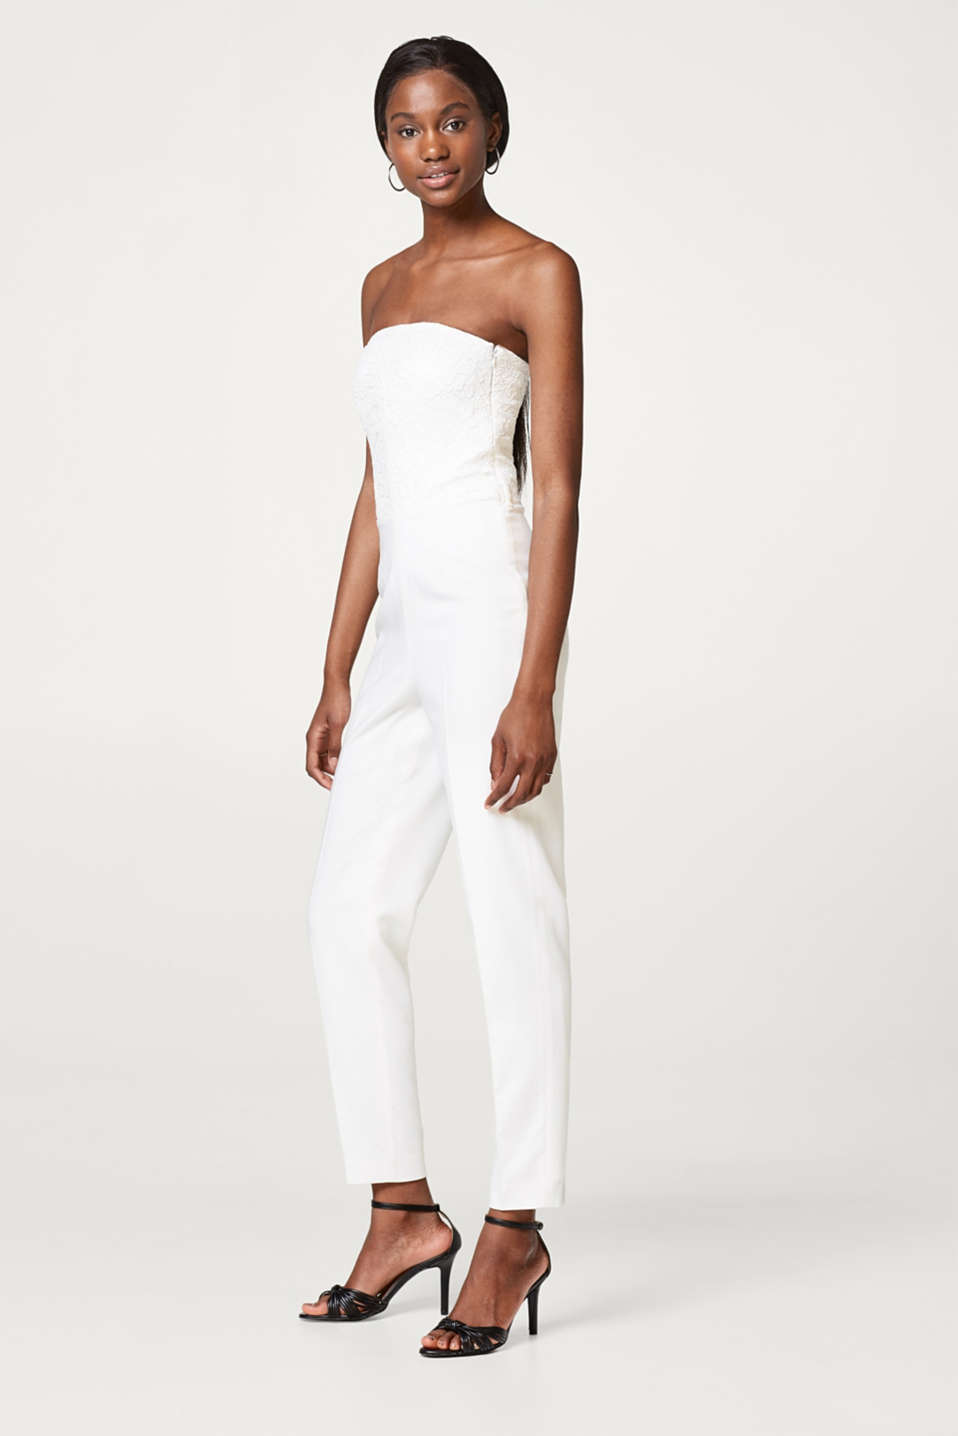 Bridal jumpsuit with a lace bodice